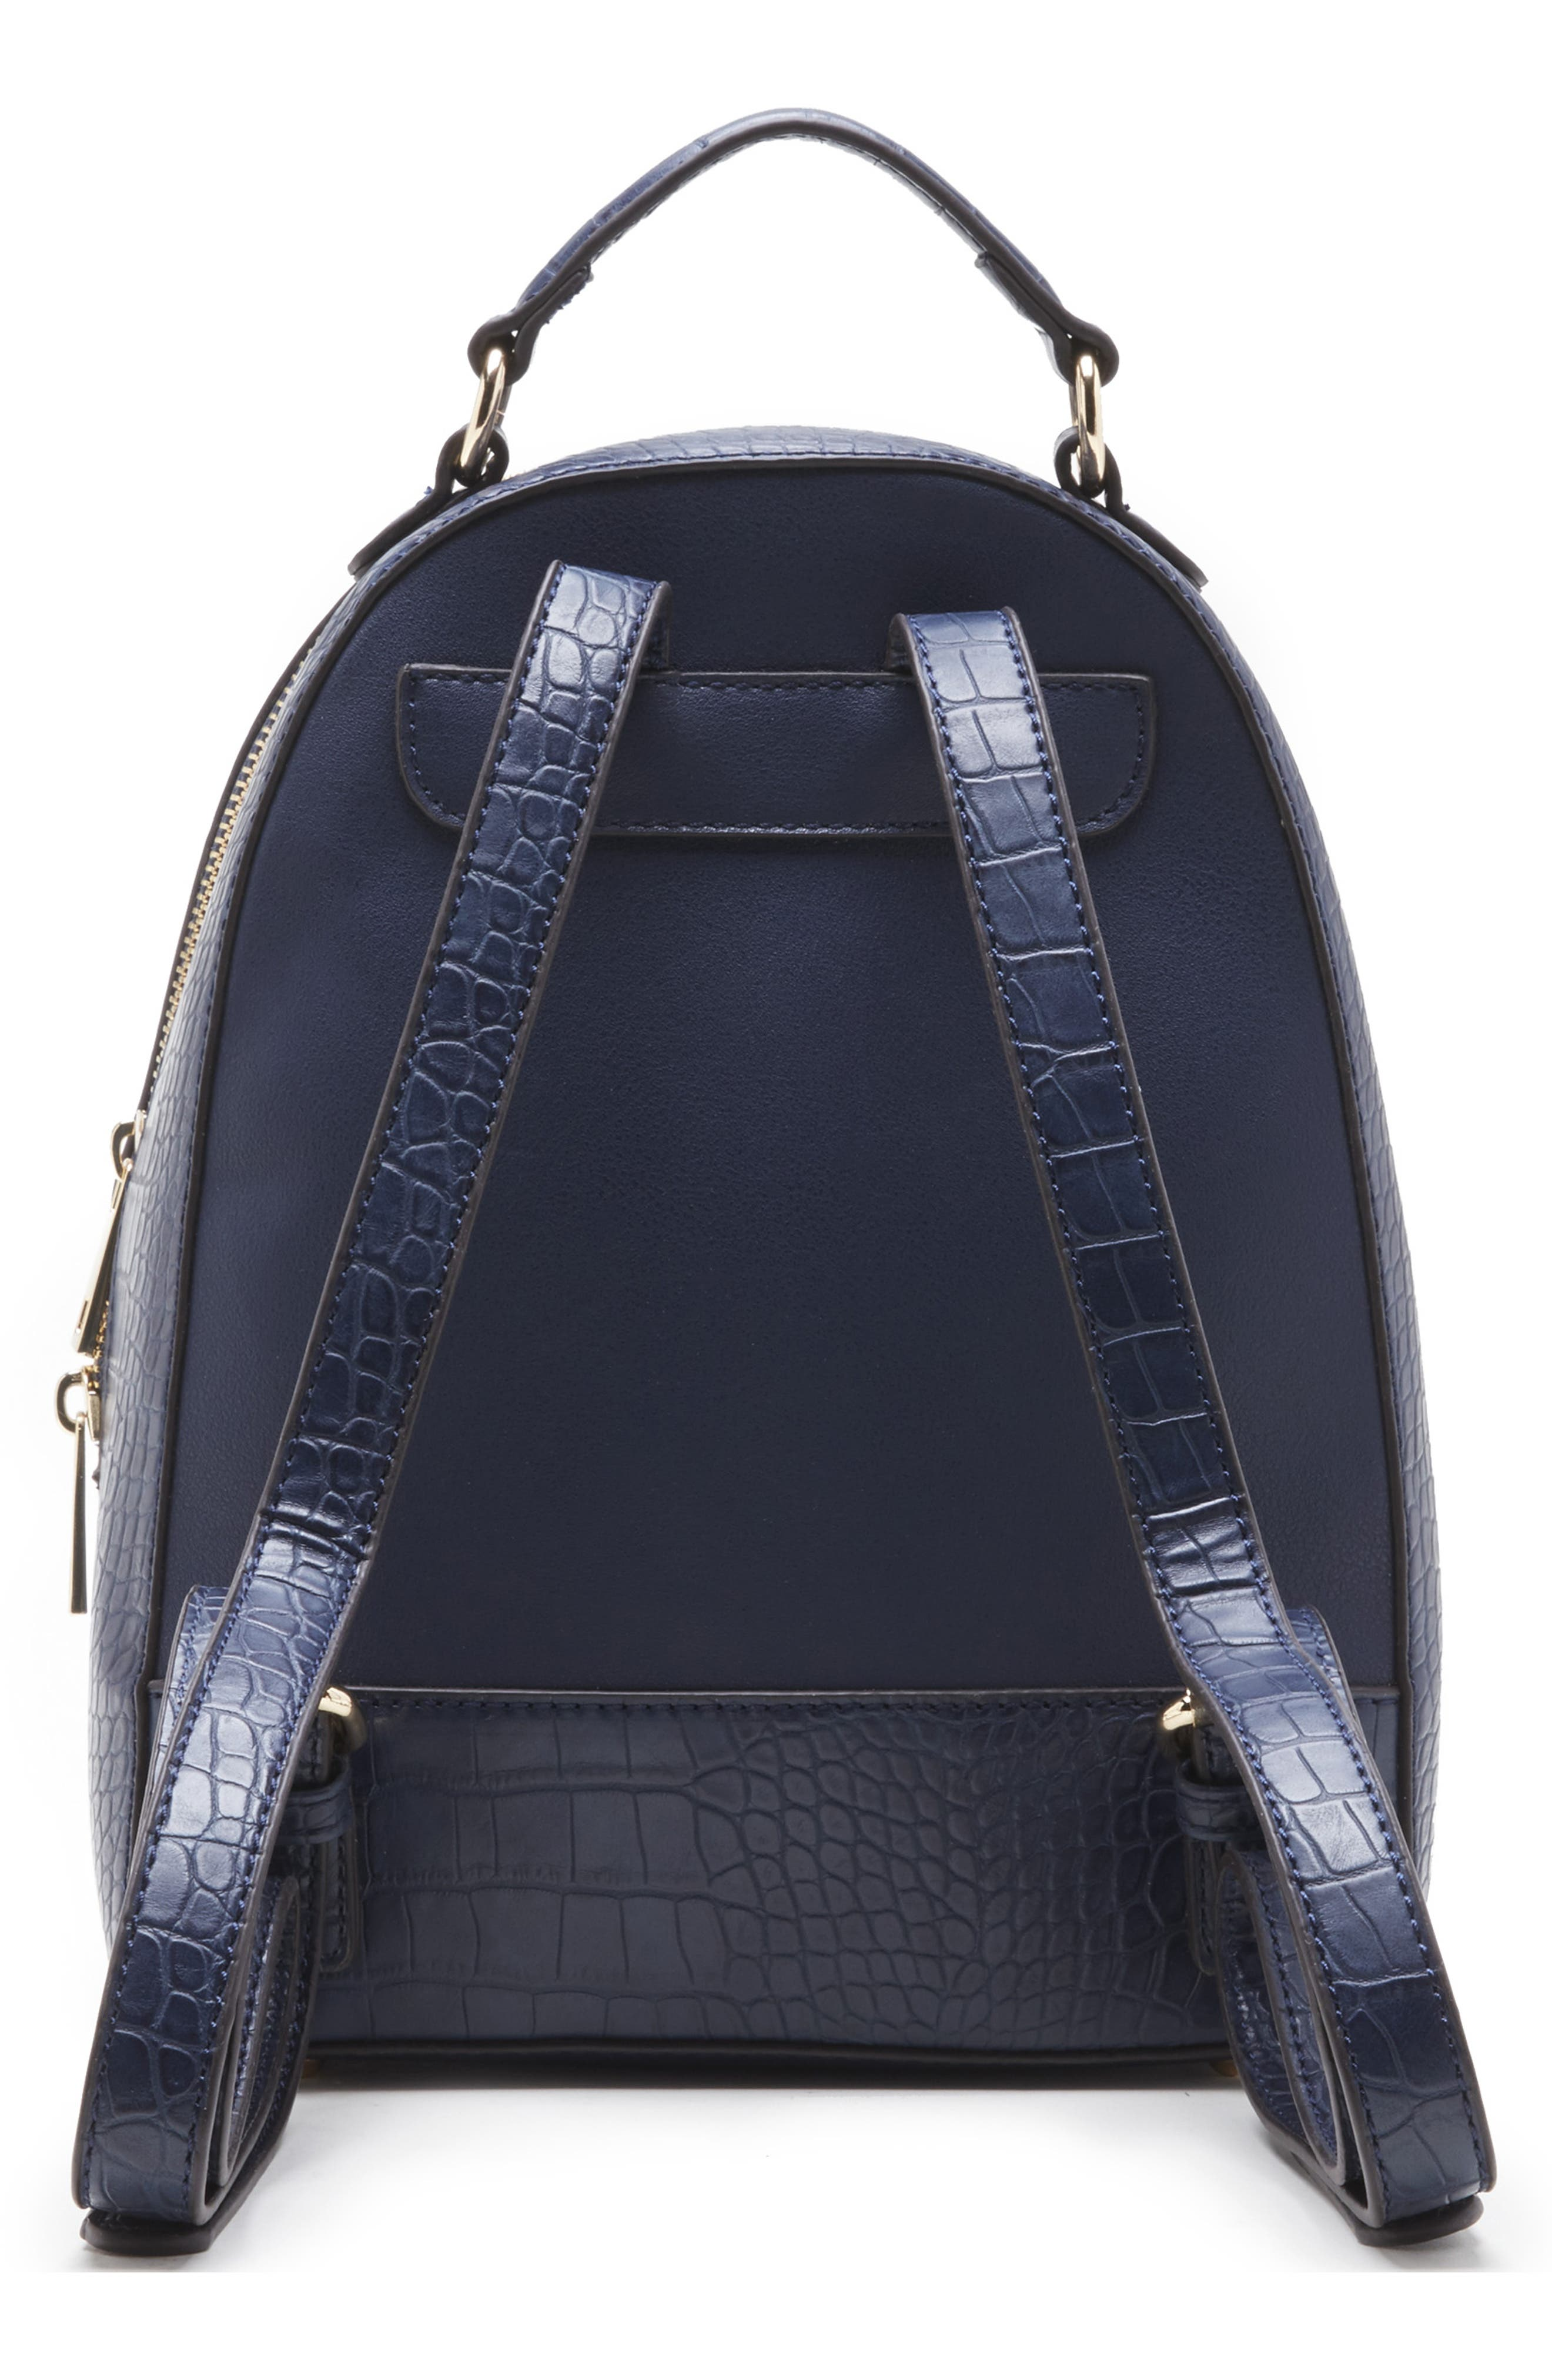 SOLE SOCIETY, Jamya Croc Embossed Faux Leather Backpack, Alternate thumbnail 2, color, MIDNIGHT